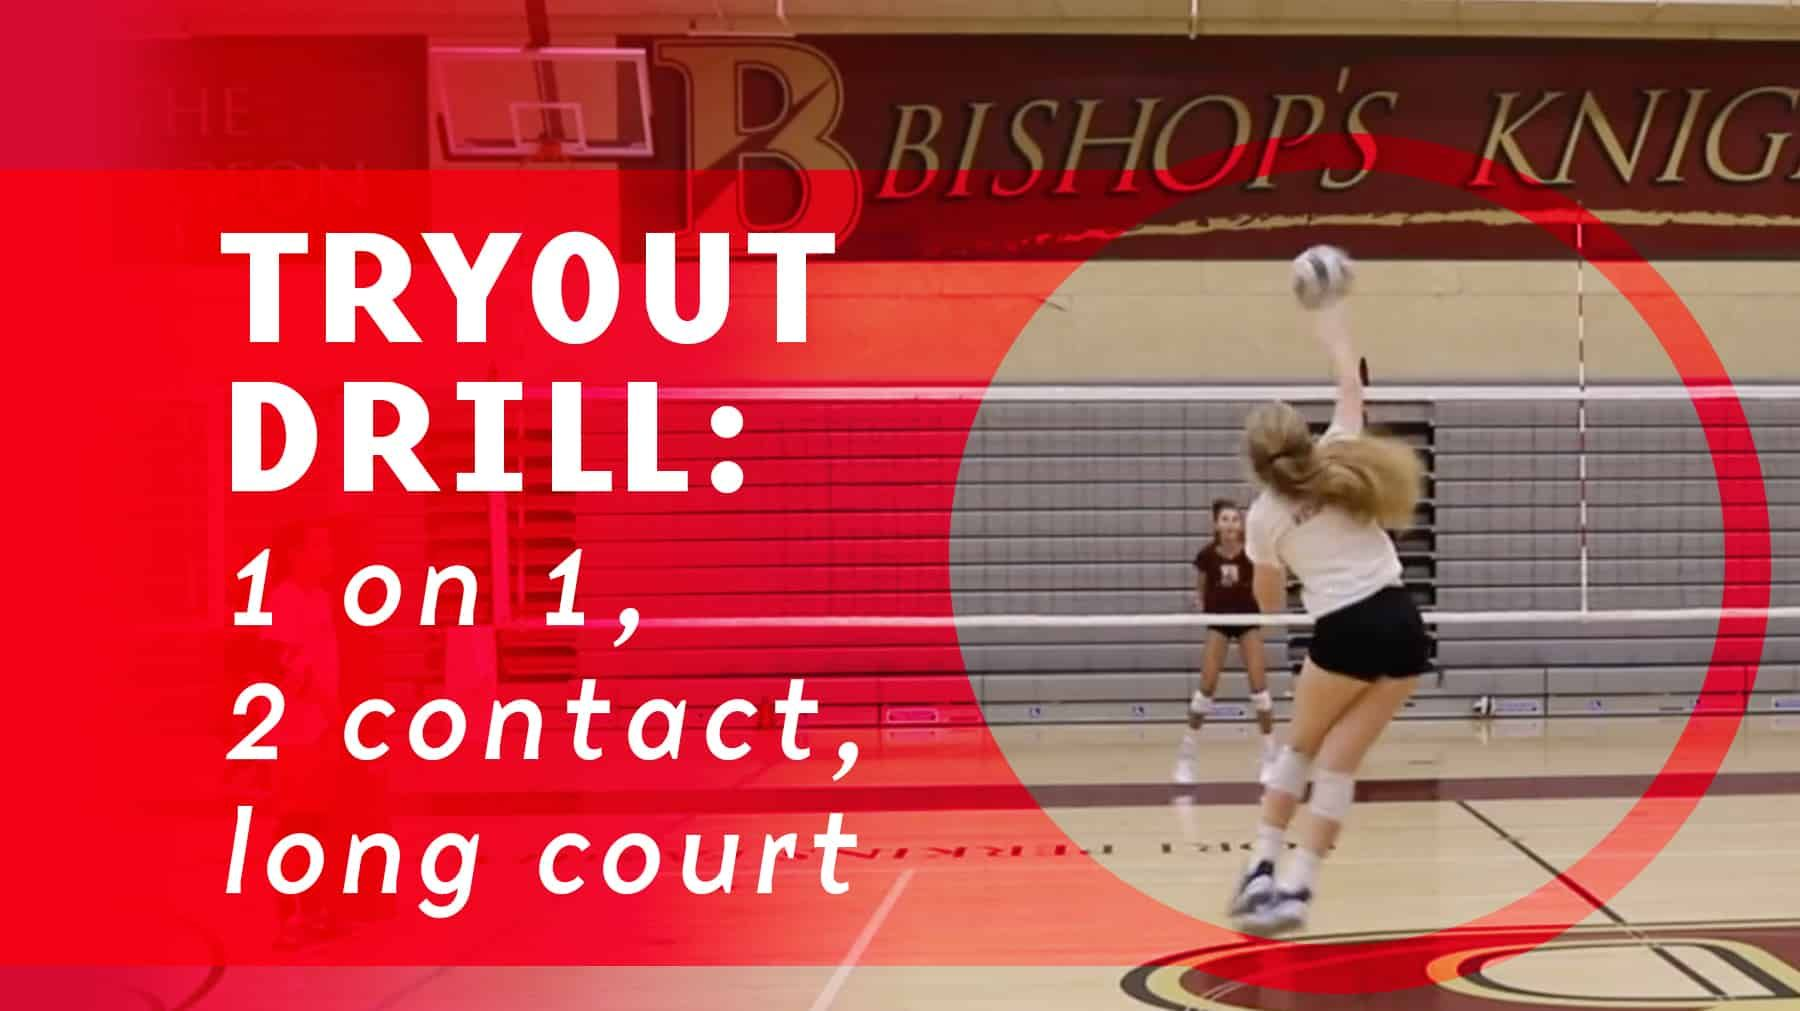 Tryout Drill 1 On 1 2 Contact Long Court Coaching Volleyball Volleyball Skills Volleyball Tryouts